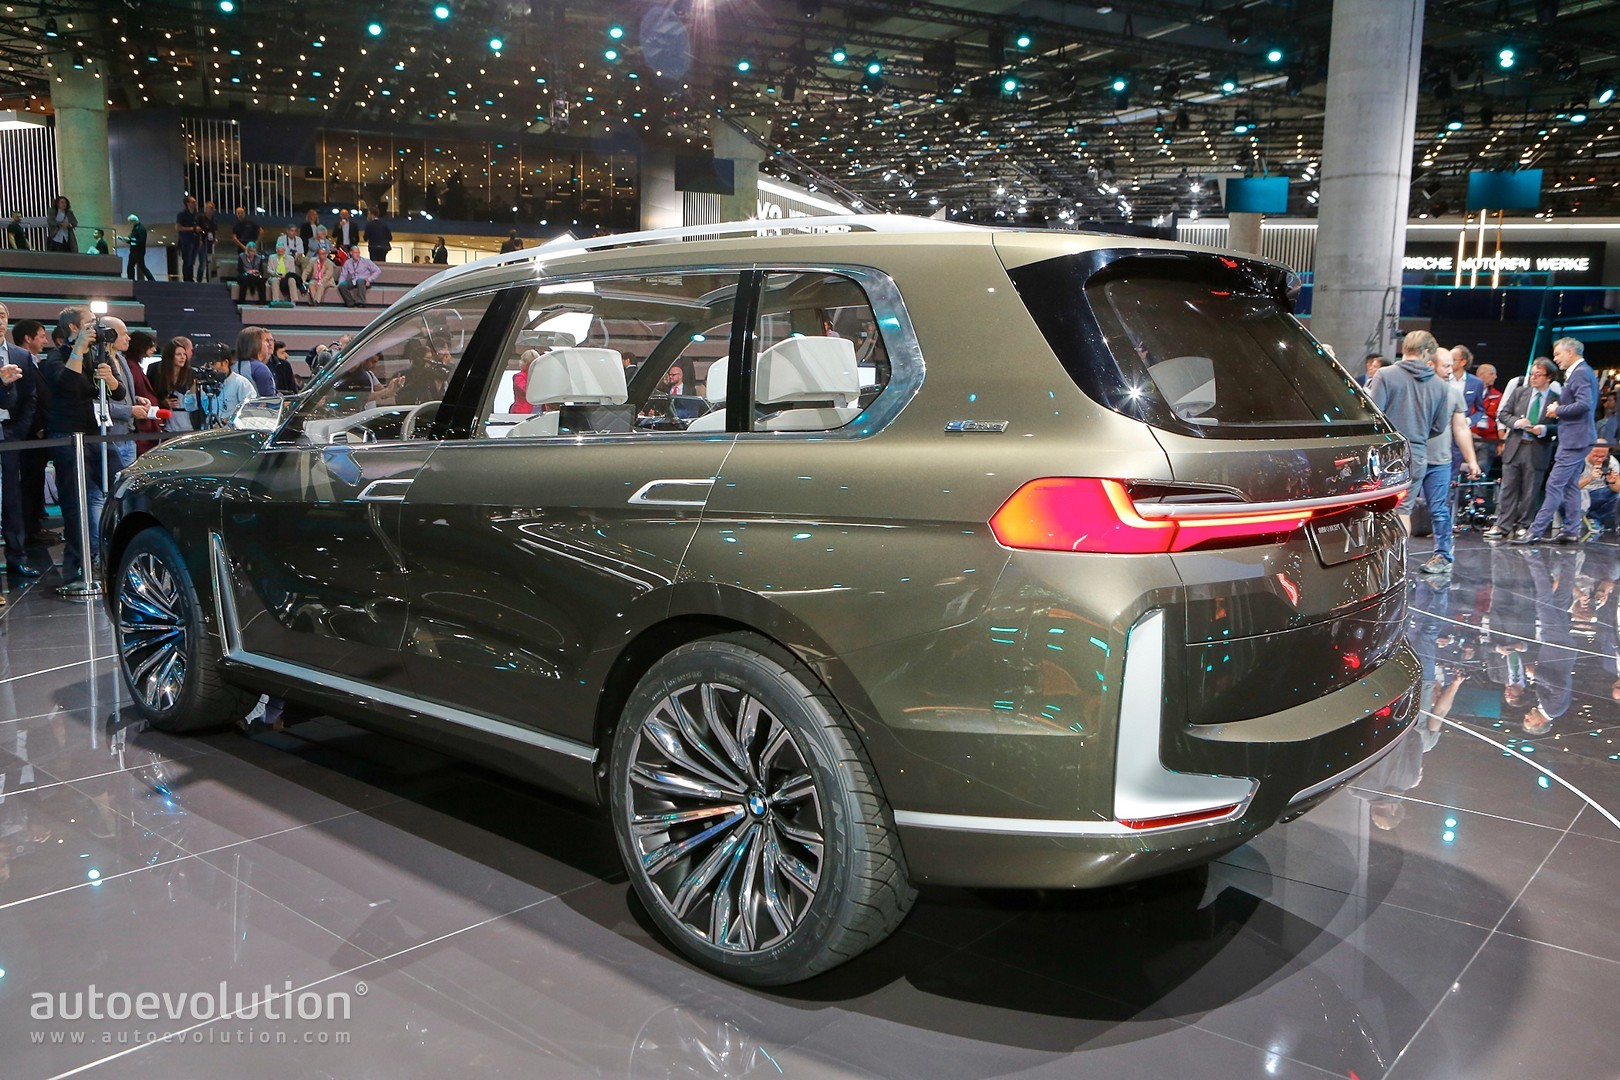 Bmw 3 0 Csl >> BMW X7 SUV Concept Is a Range Rover Lookalike in Frankfurt - autoevolution